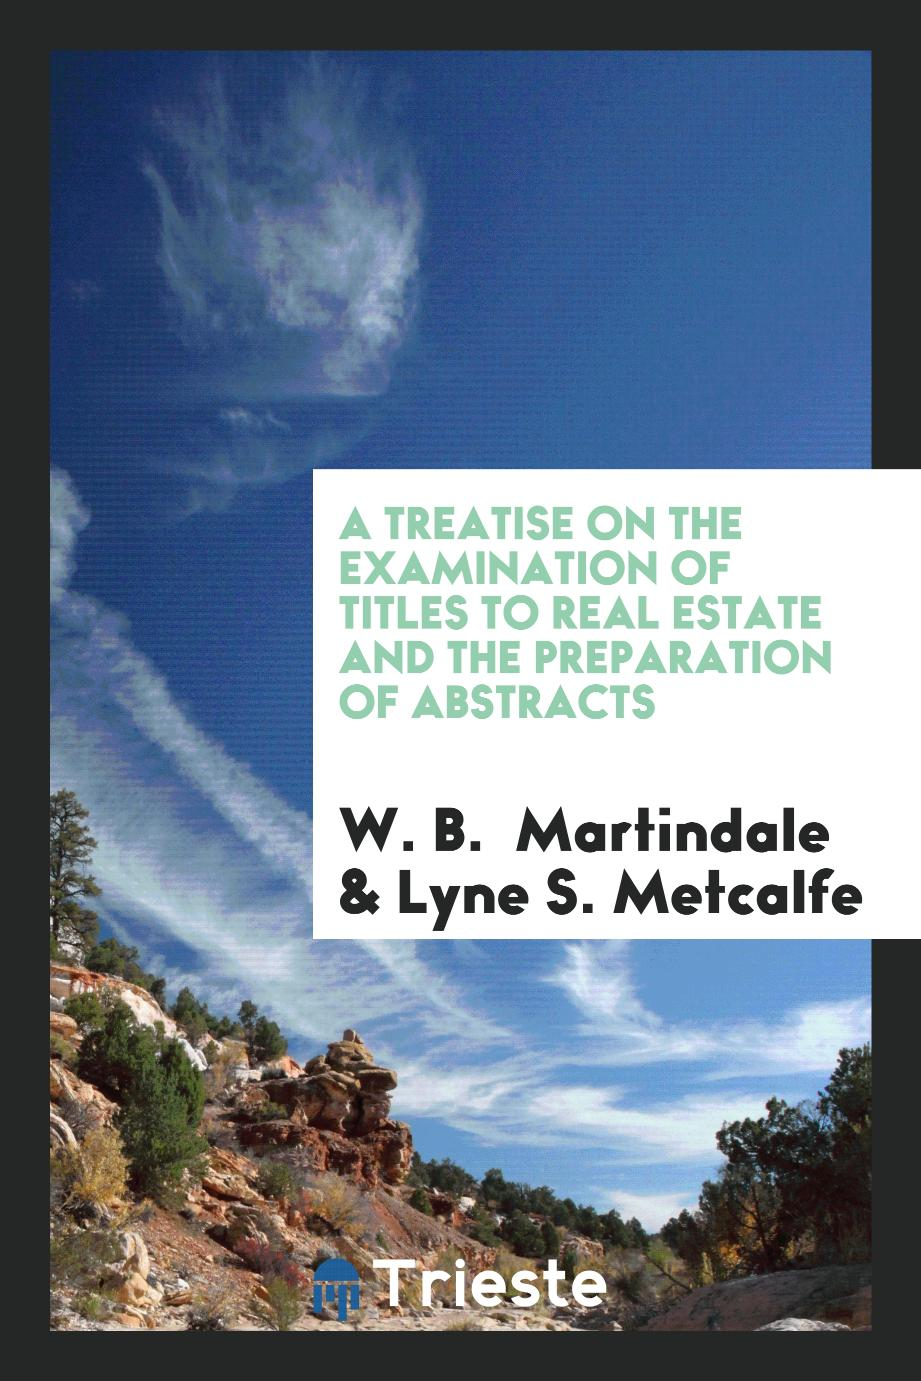 A Treatise on the Examination of Titles to Real Estate and the Preparation of Abstracts